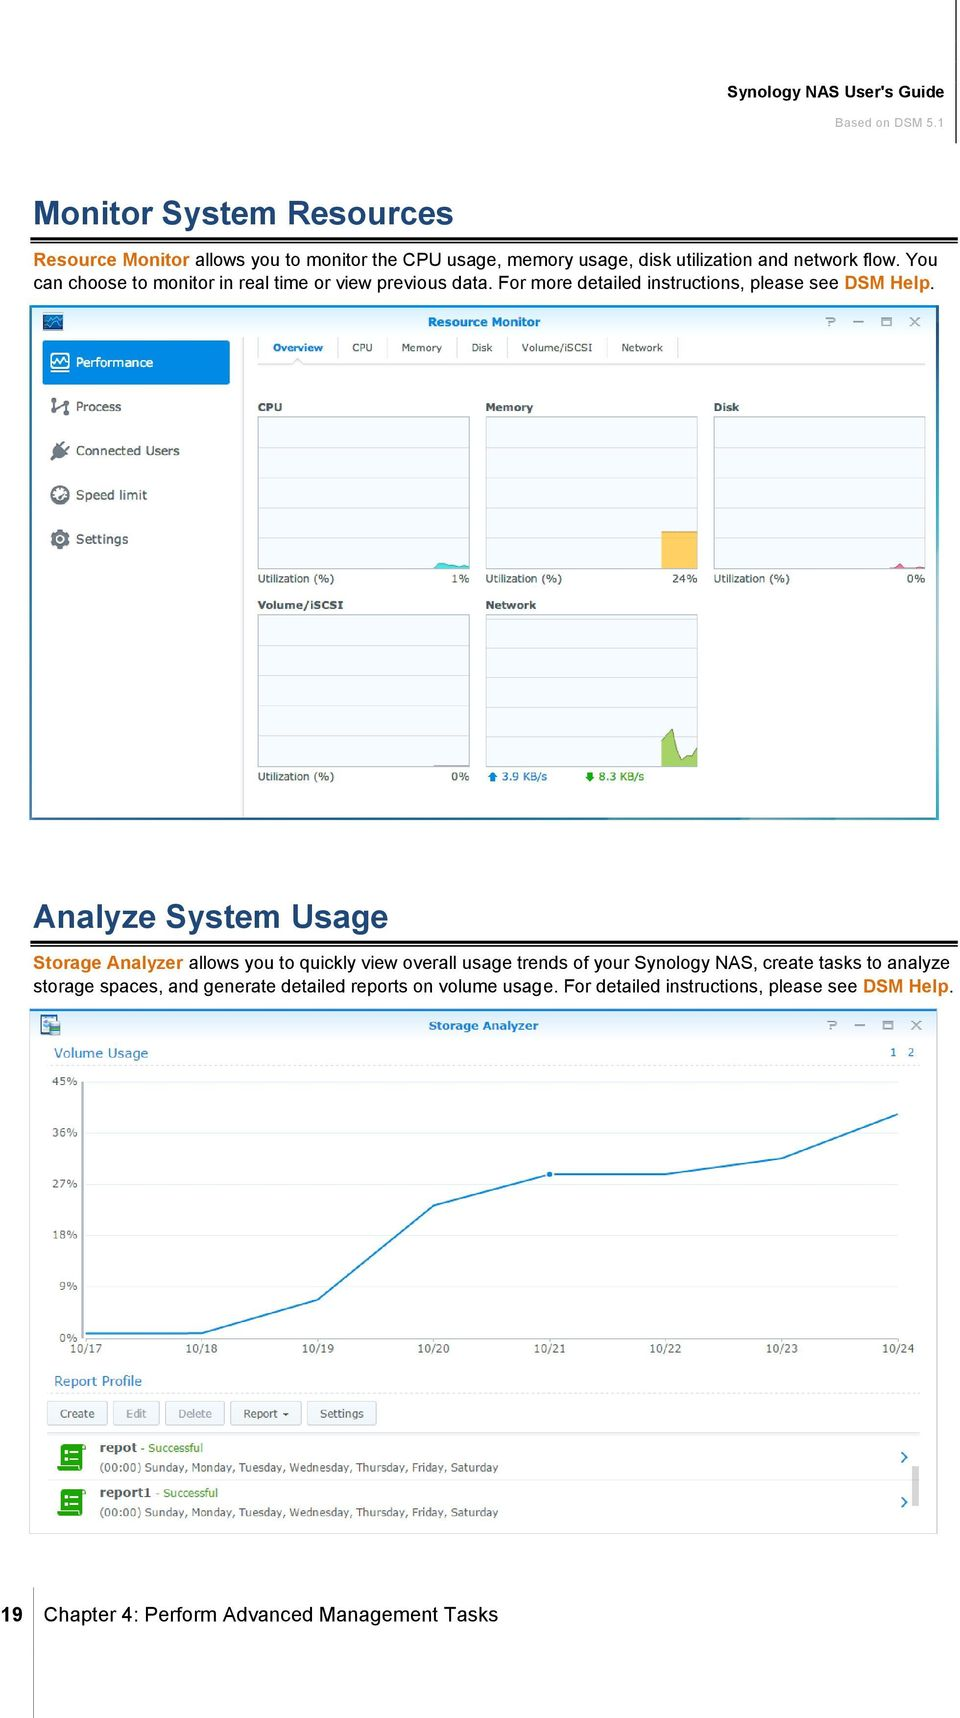 Analyze System Usage Storage Analyzer allows you to quickly view overall usage trends of your Synology NAS, create tasks to analyze storage